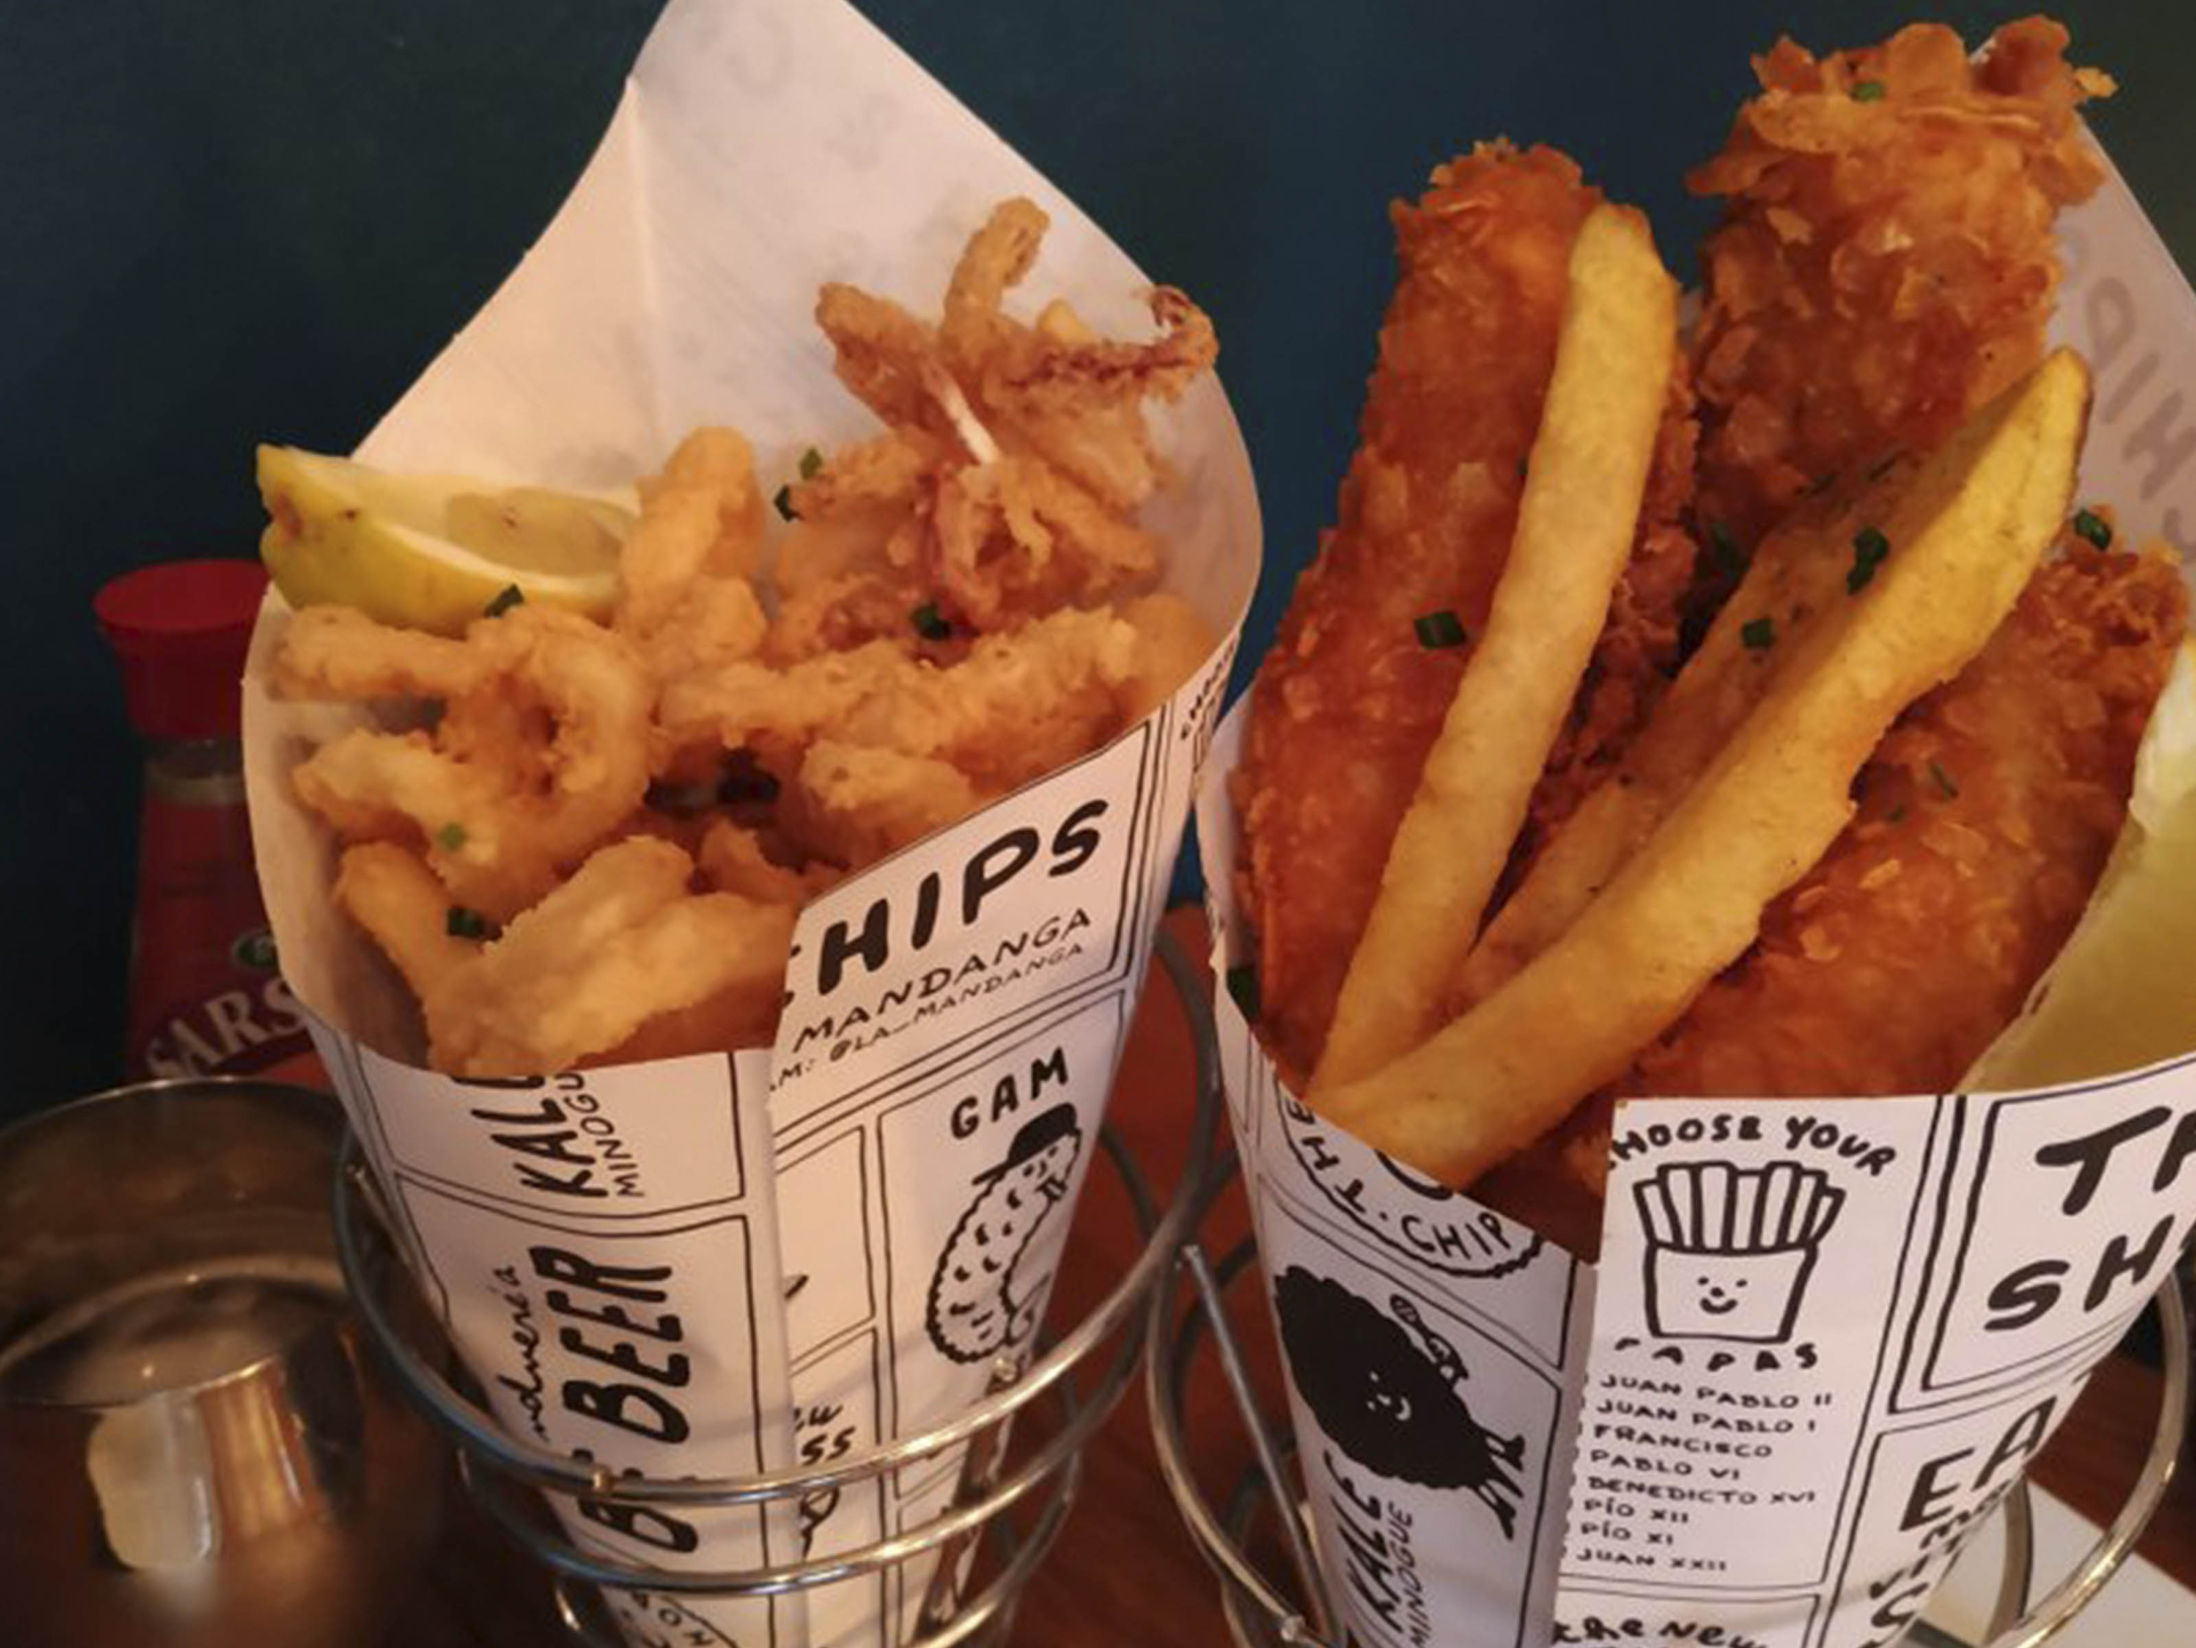 Best Restaurants in Barcelona - The Fish and Chips Shop